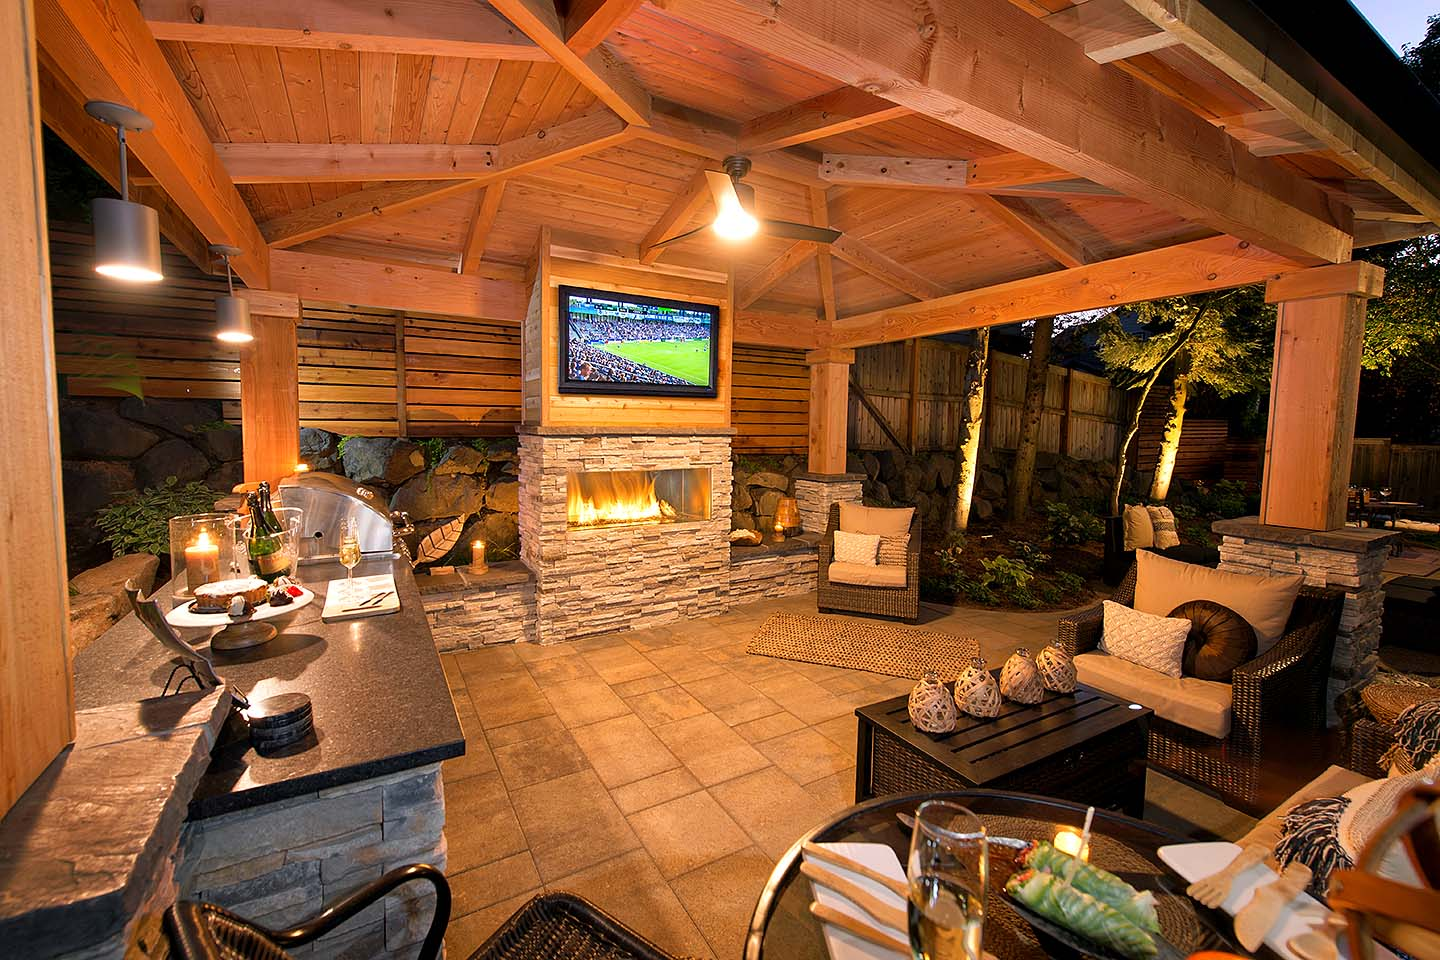 Outdoor Living Room for game night! Bar island grill and counter, gas fireplace, TV,  & seat walls - Outdoor over head lighting & pendulum lights over Bar